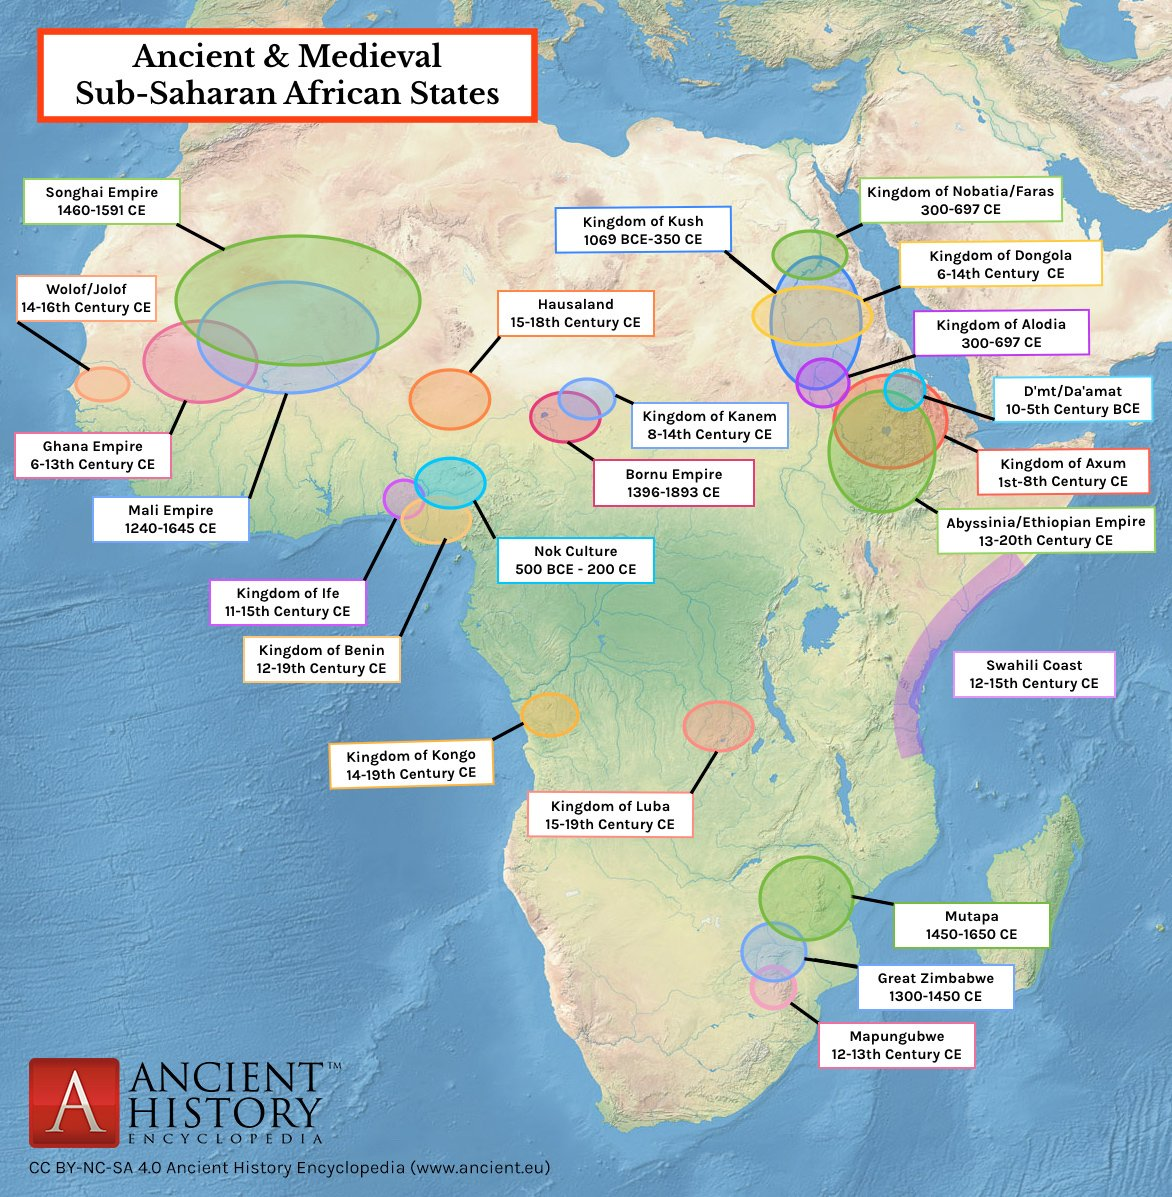 Ancient Africa Map Map of Ancient & Medieval Sub Saharan African States (Illustration